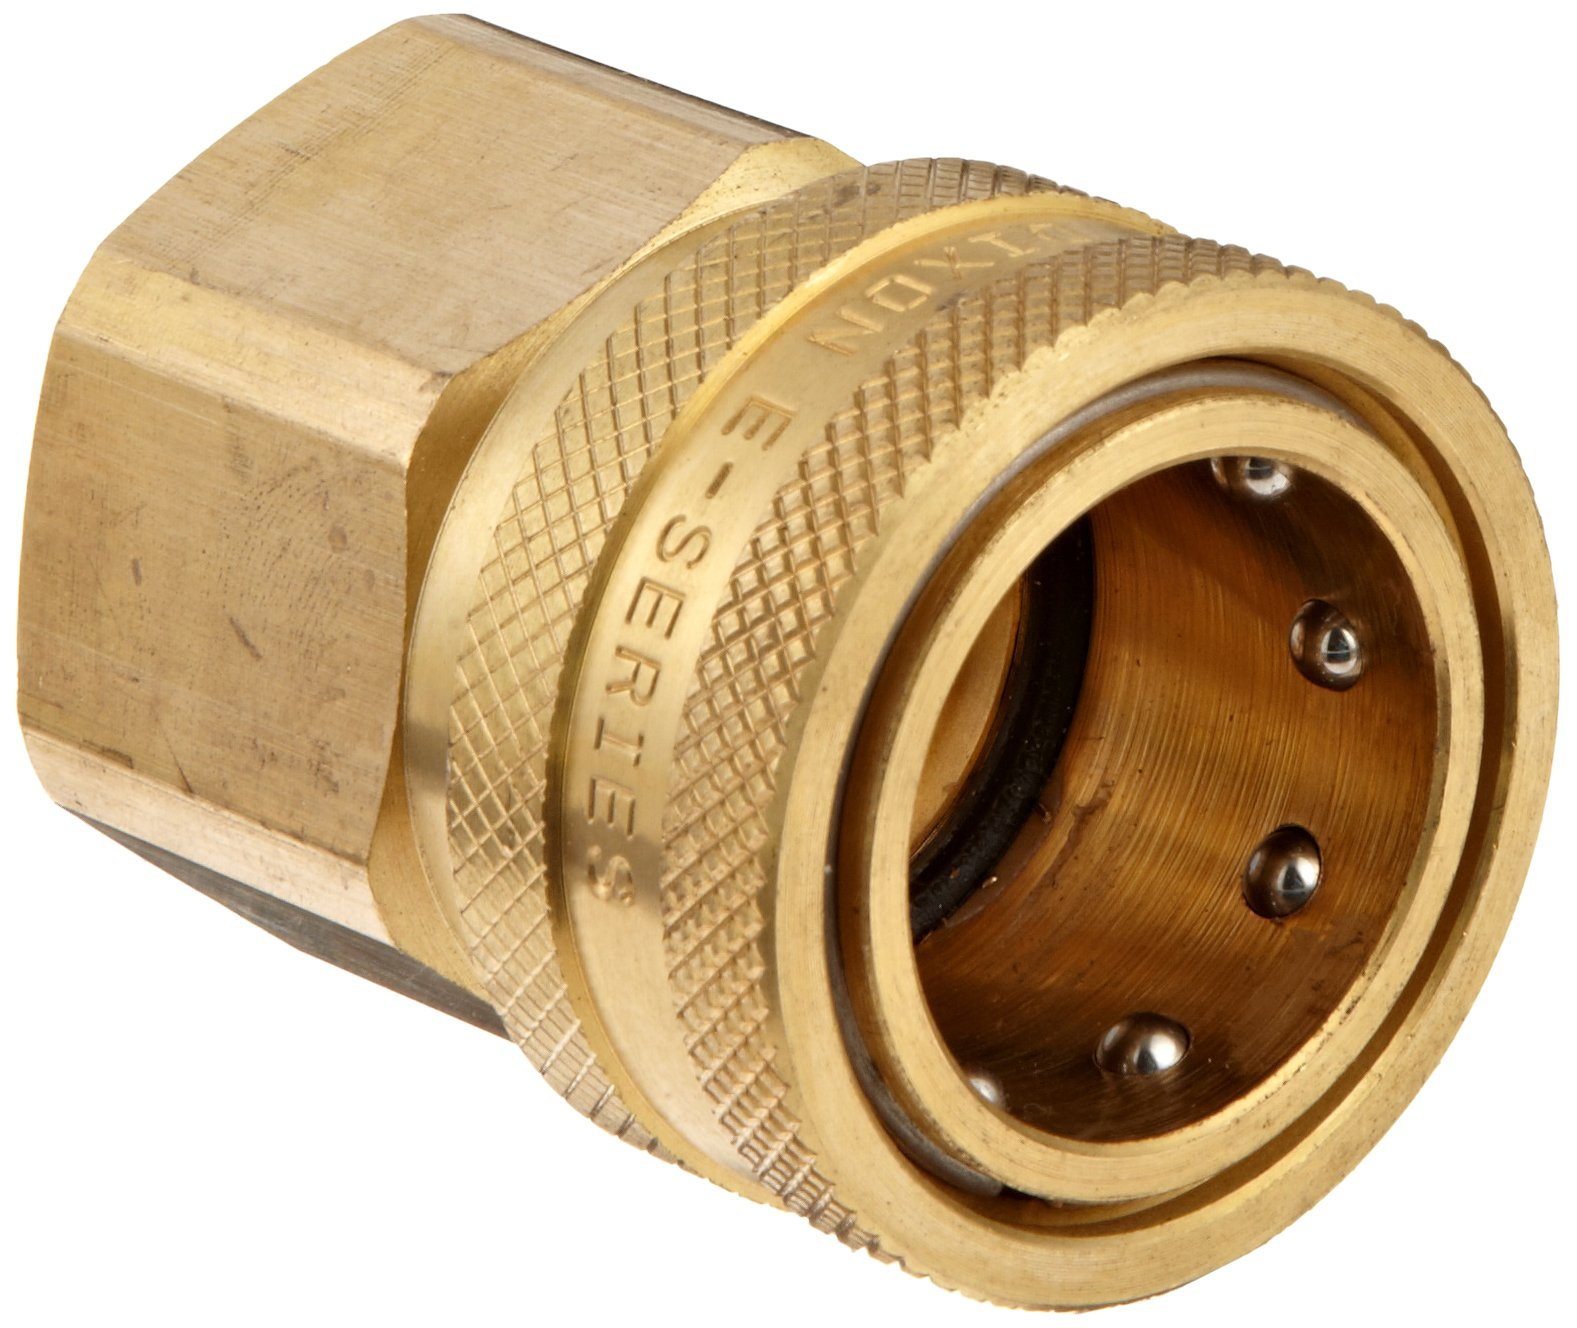 Dixon STFC8 Brass Hydraulic Quick-Connect Fitting, 1'' Female Coupling x 1''-11-1/2 NPTF Female